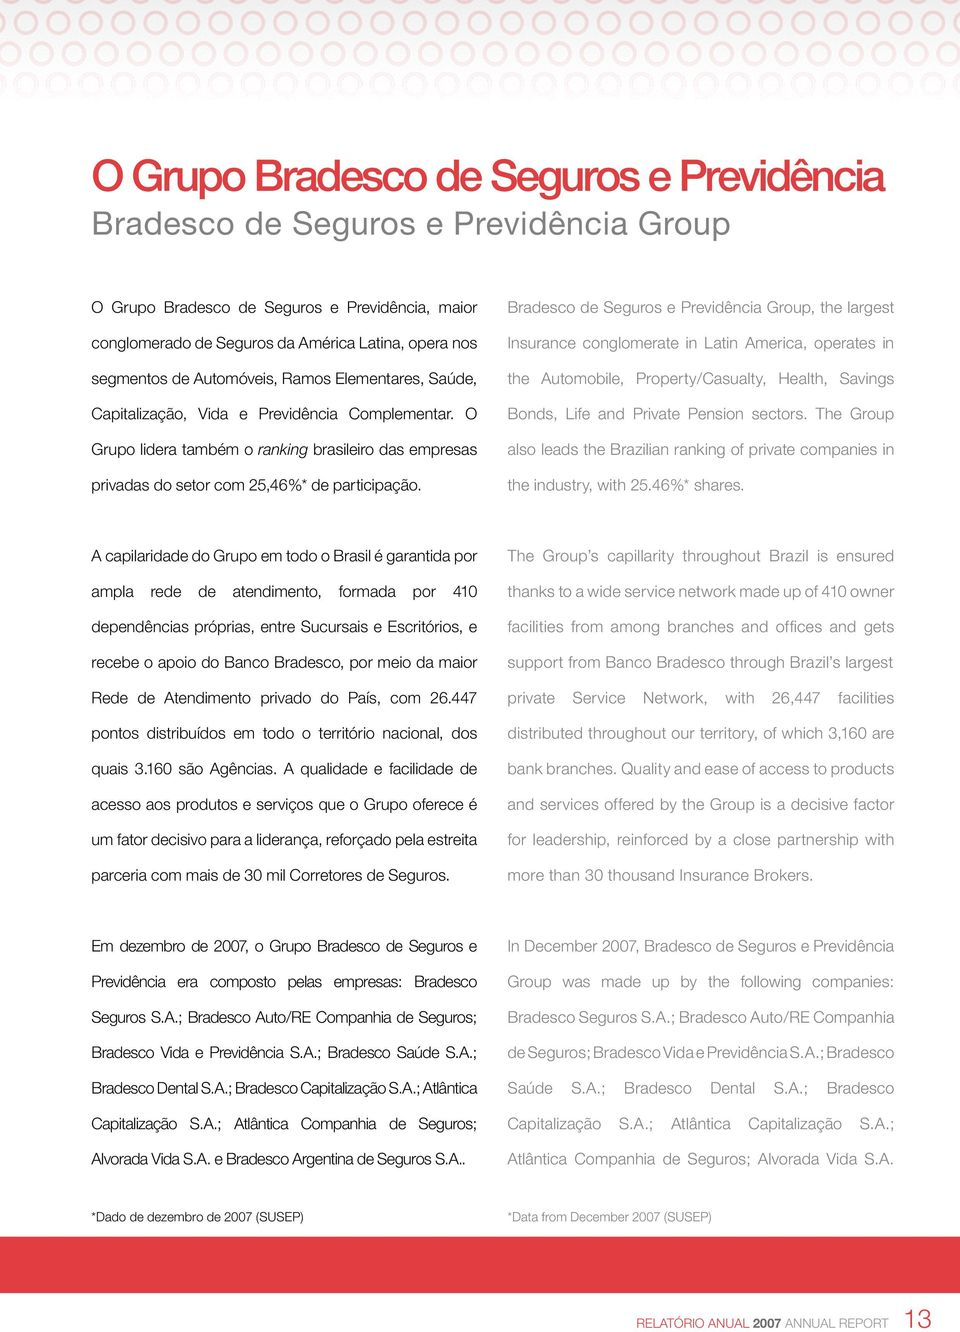 Bradesco de Seguros e Previdência Group, the largest Insurance conglomerate in Latin America, operates in the Automobile, Property/Casualty, Health, Savings Bonds, Life and Private Pension sectors.